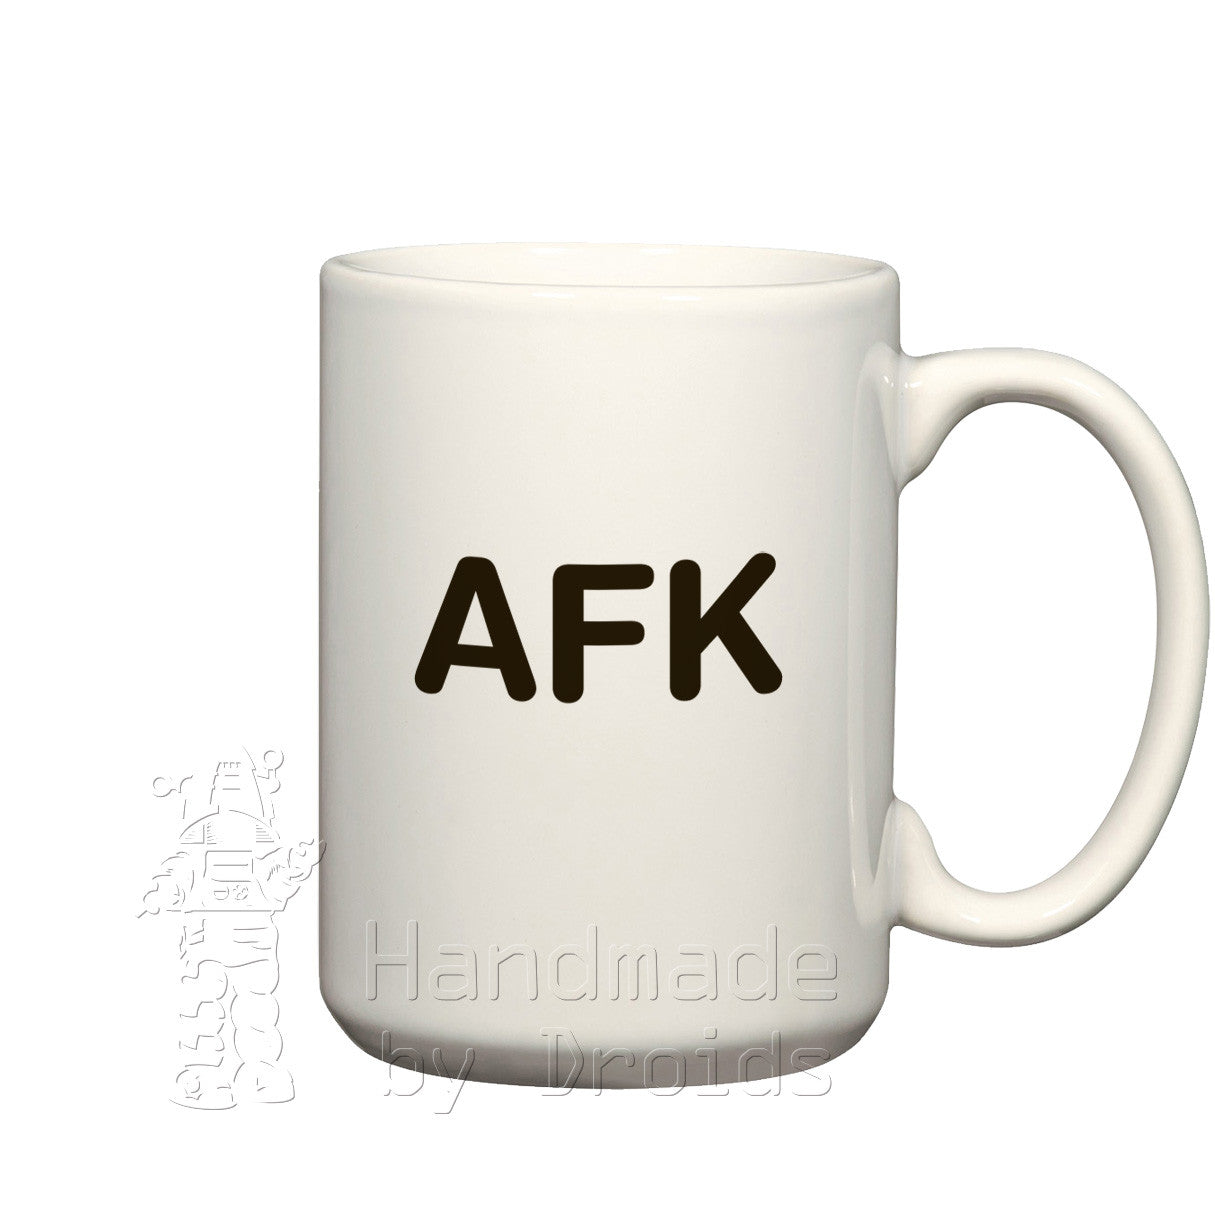 AFK (Away From Keyboard) mug